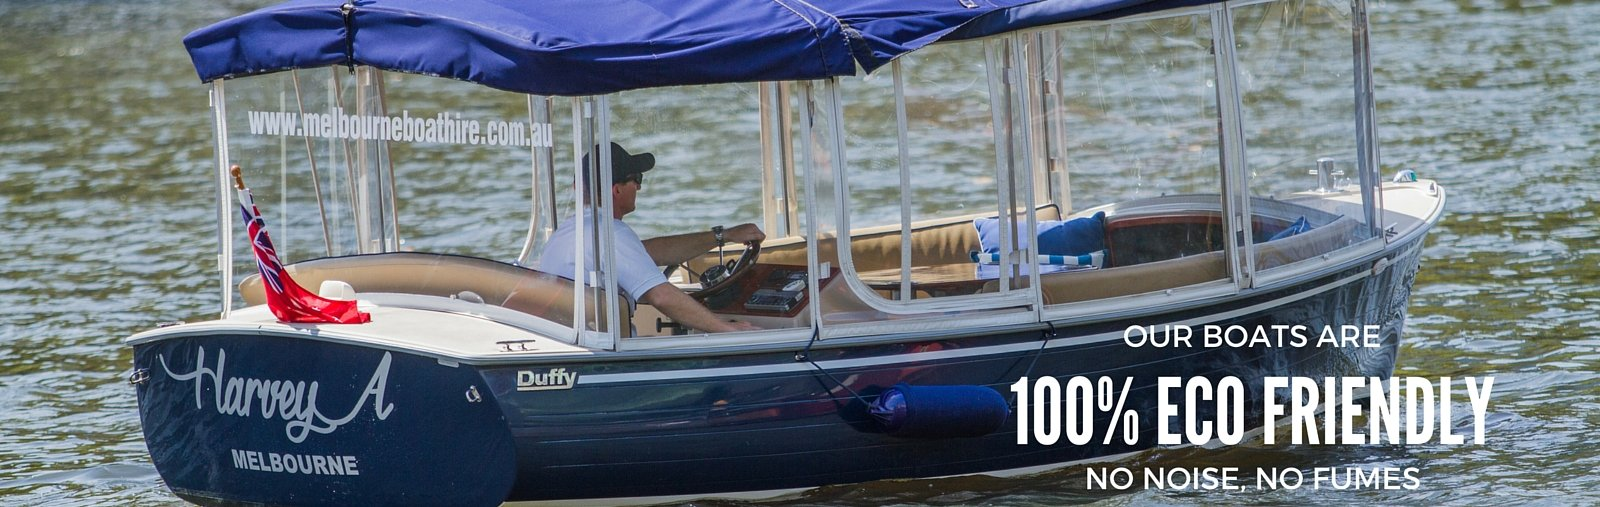 Melbourne's only eco-friendly hire boats for rent